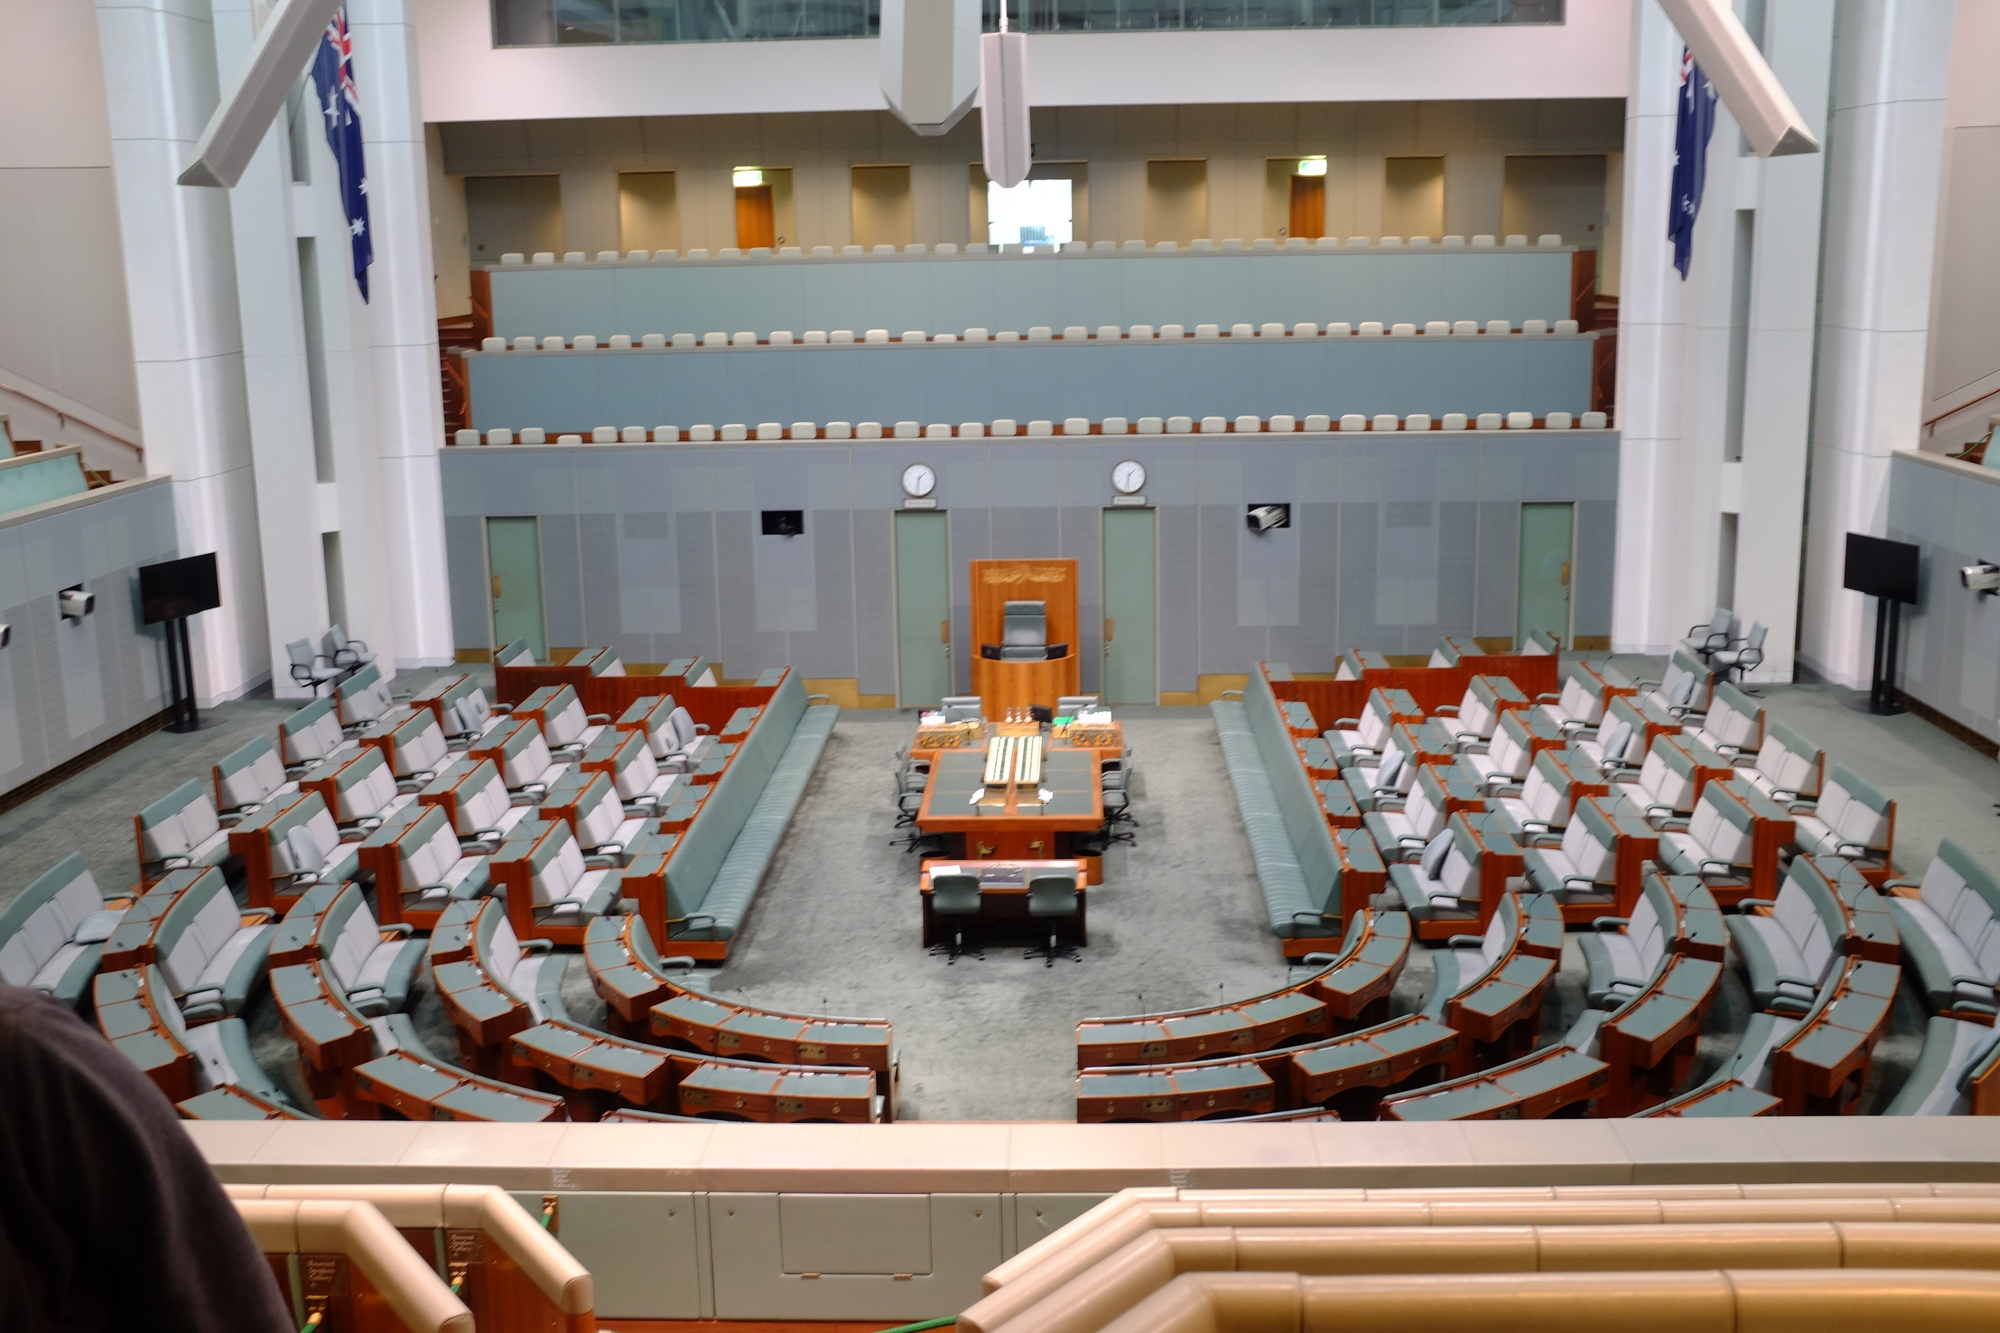 house of representatives chamber in parliament house